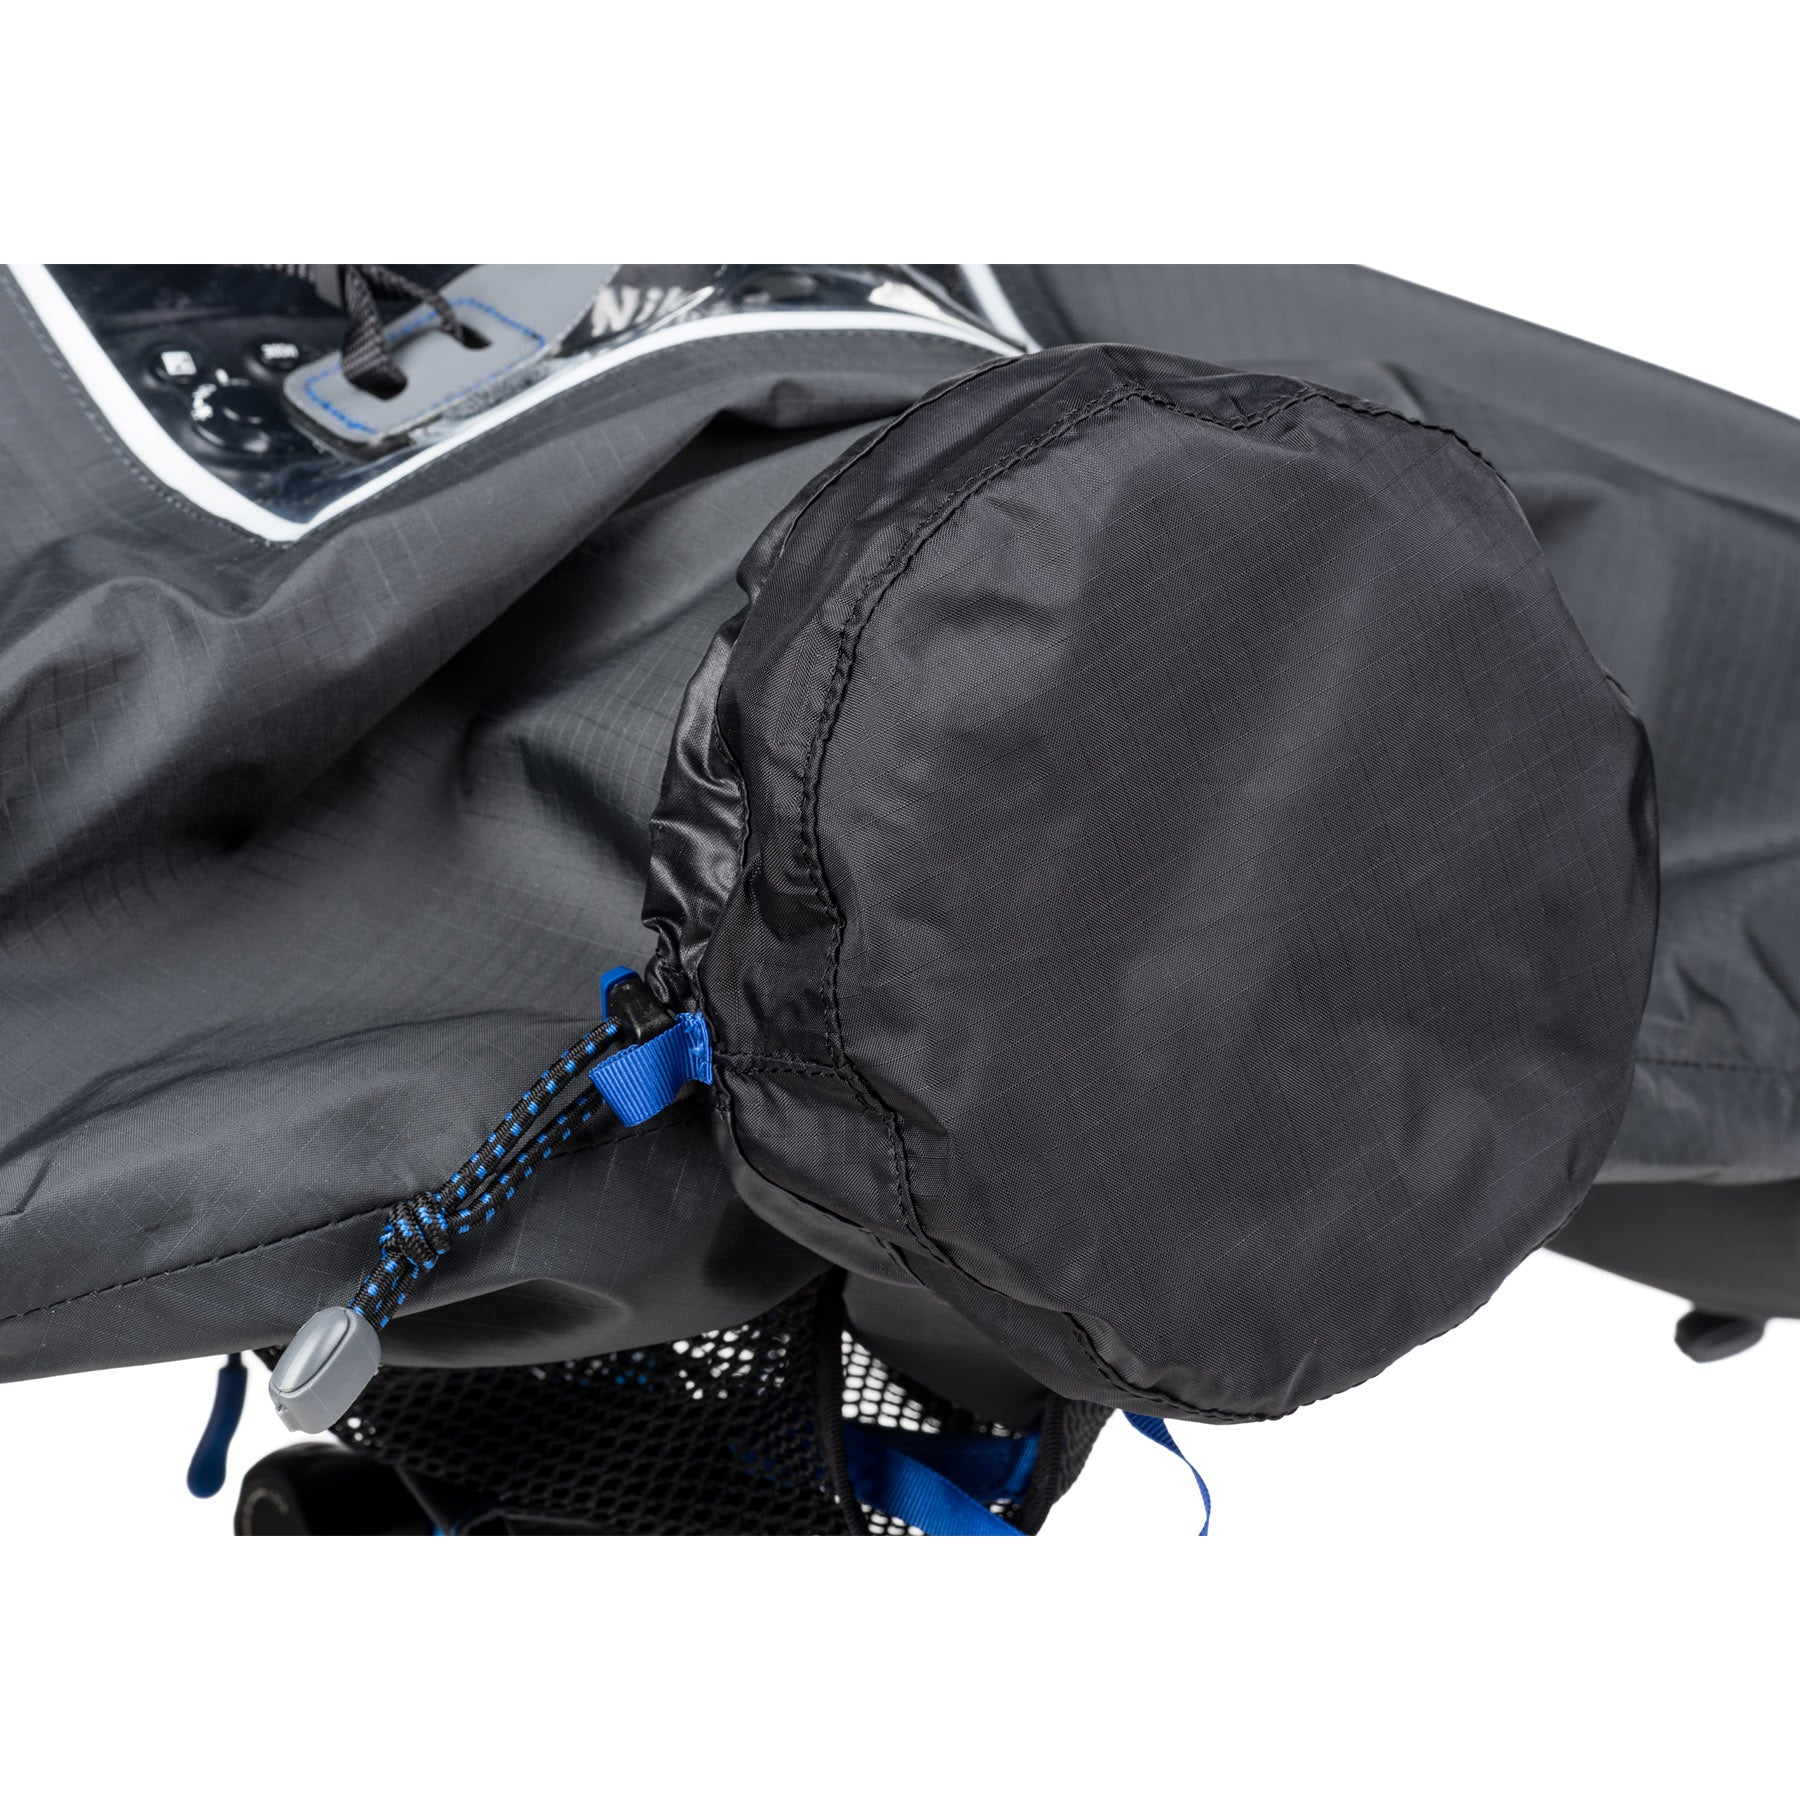 Hydrophobia 24-70 best rain cover for DSLR Camera and lens • Think